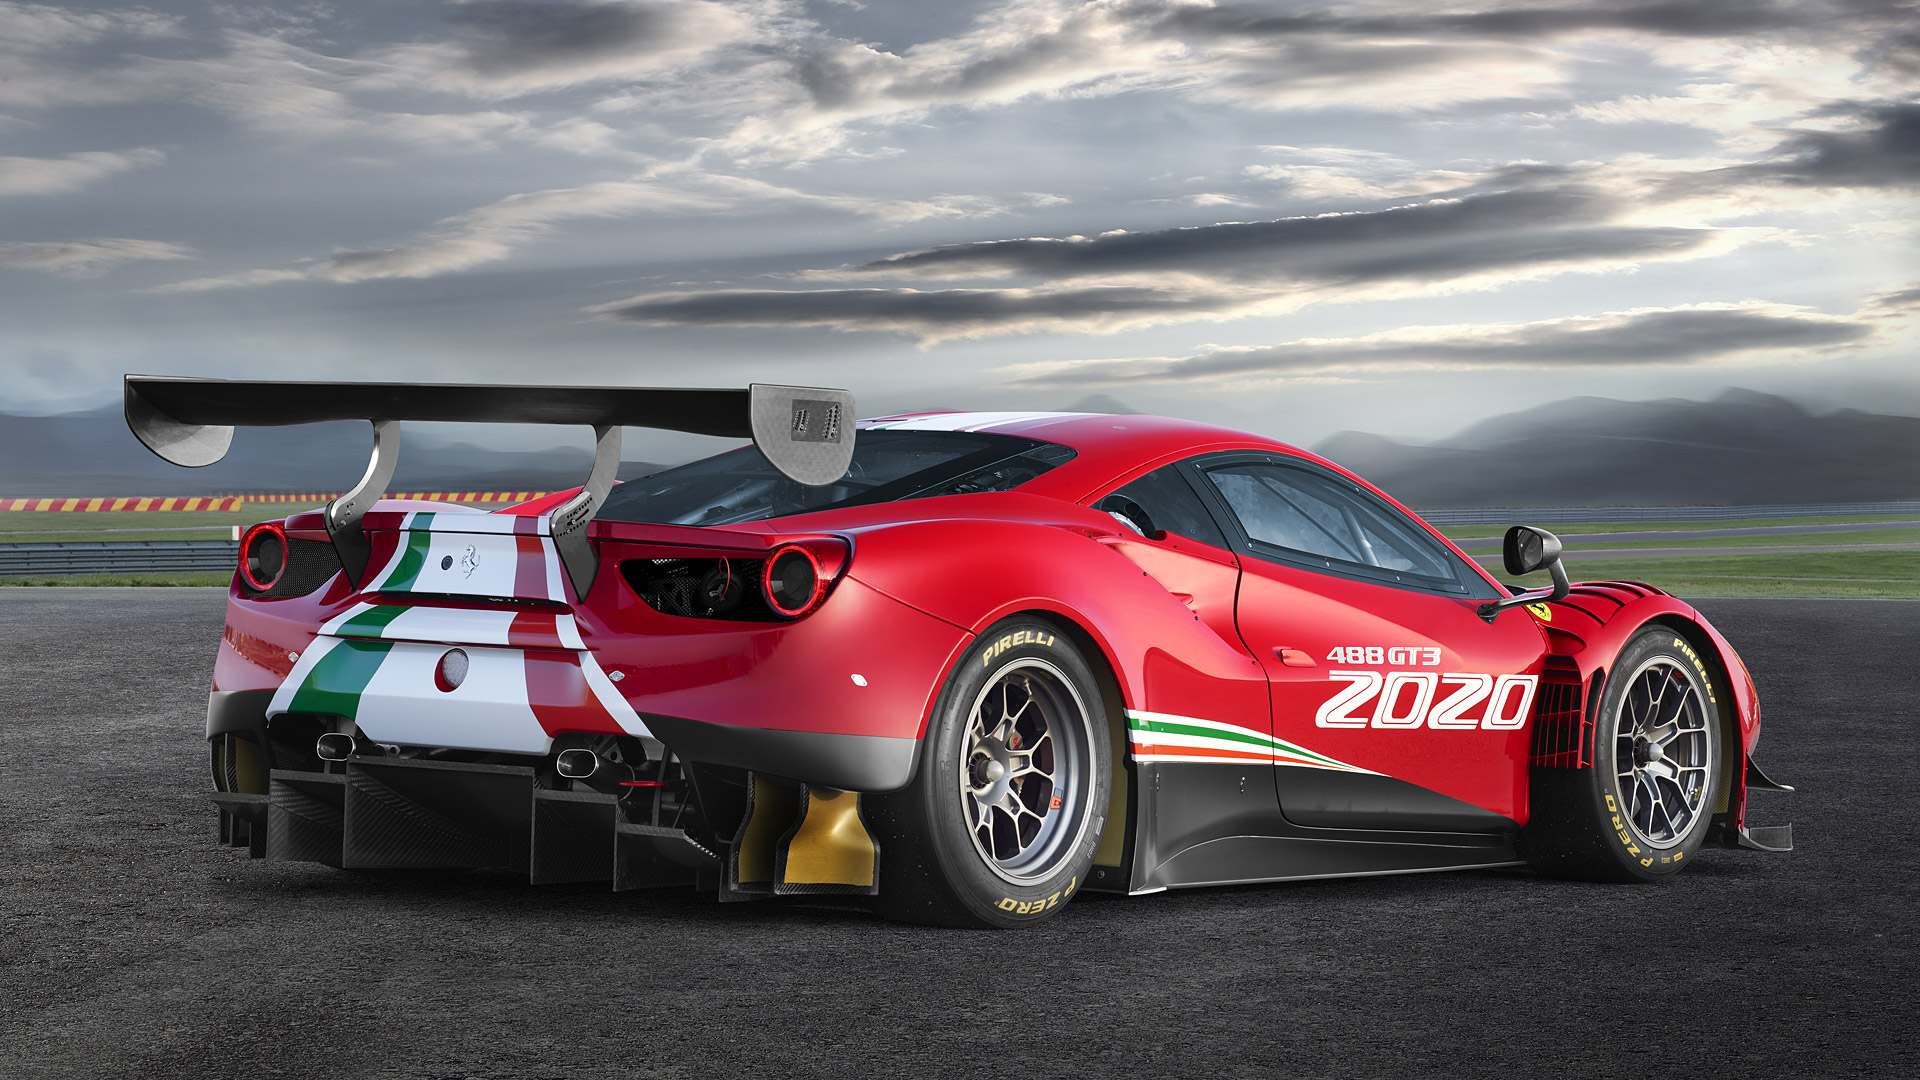 2020 Ferrari 488 GT3 Evo Wallpapers HD Images   WSupercars 1920x1080